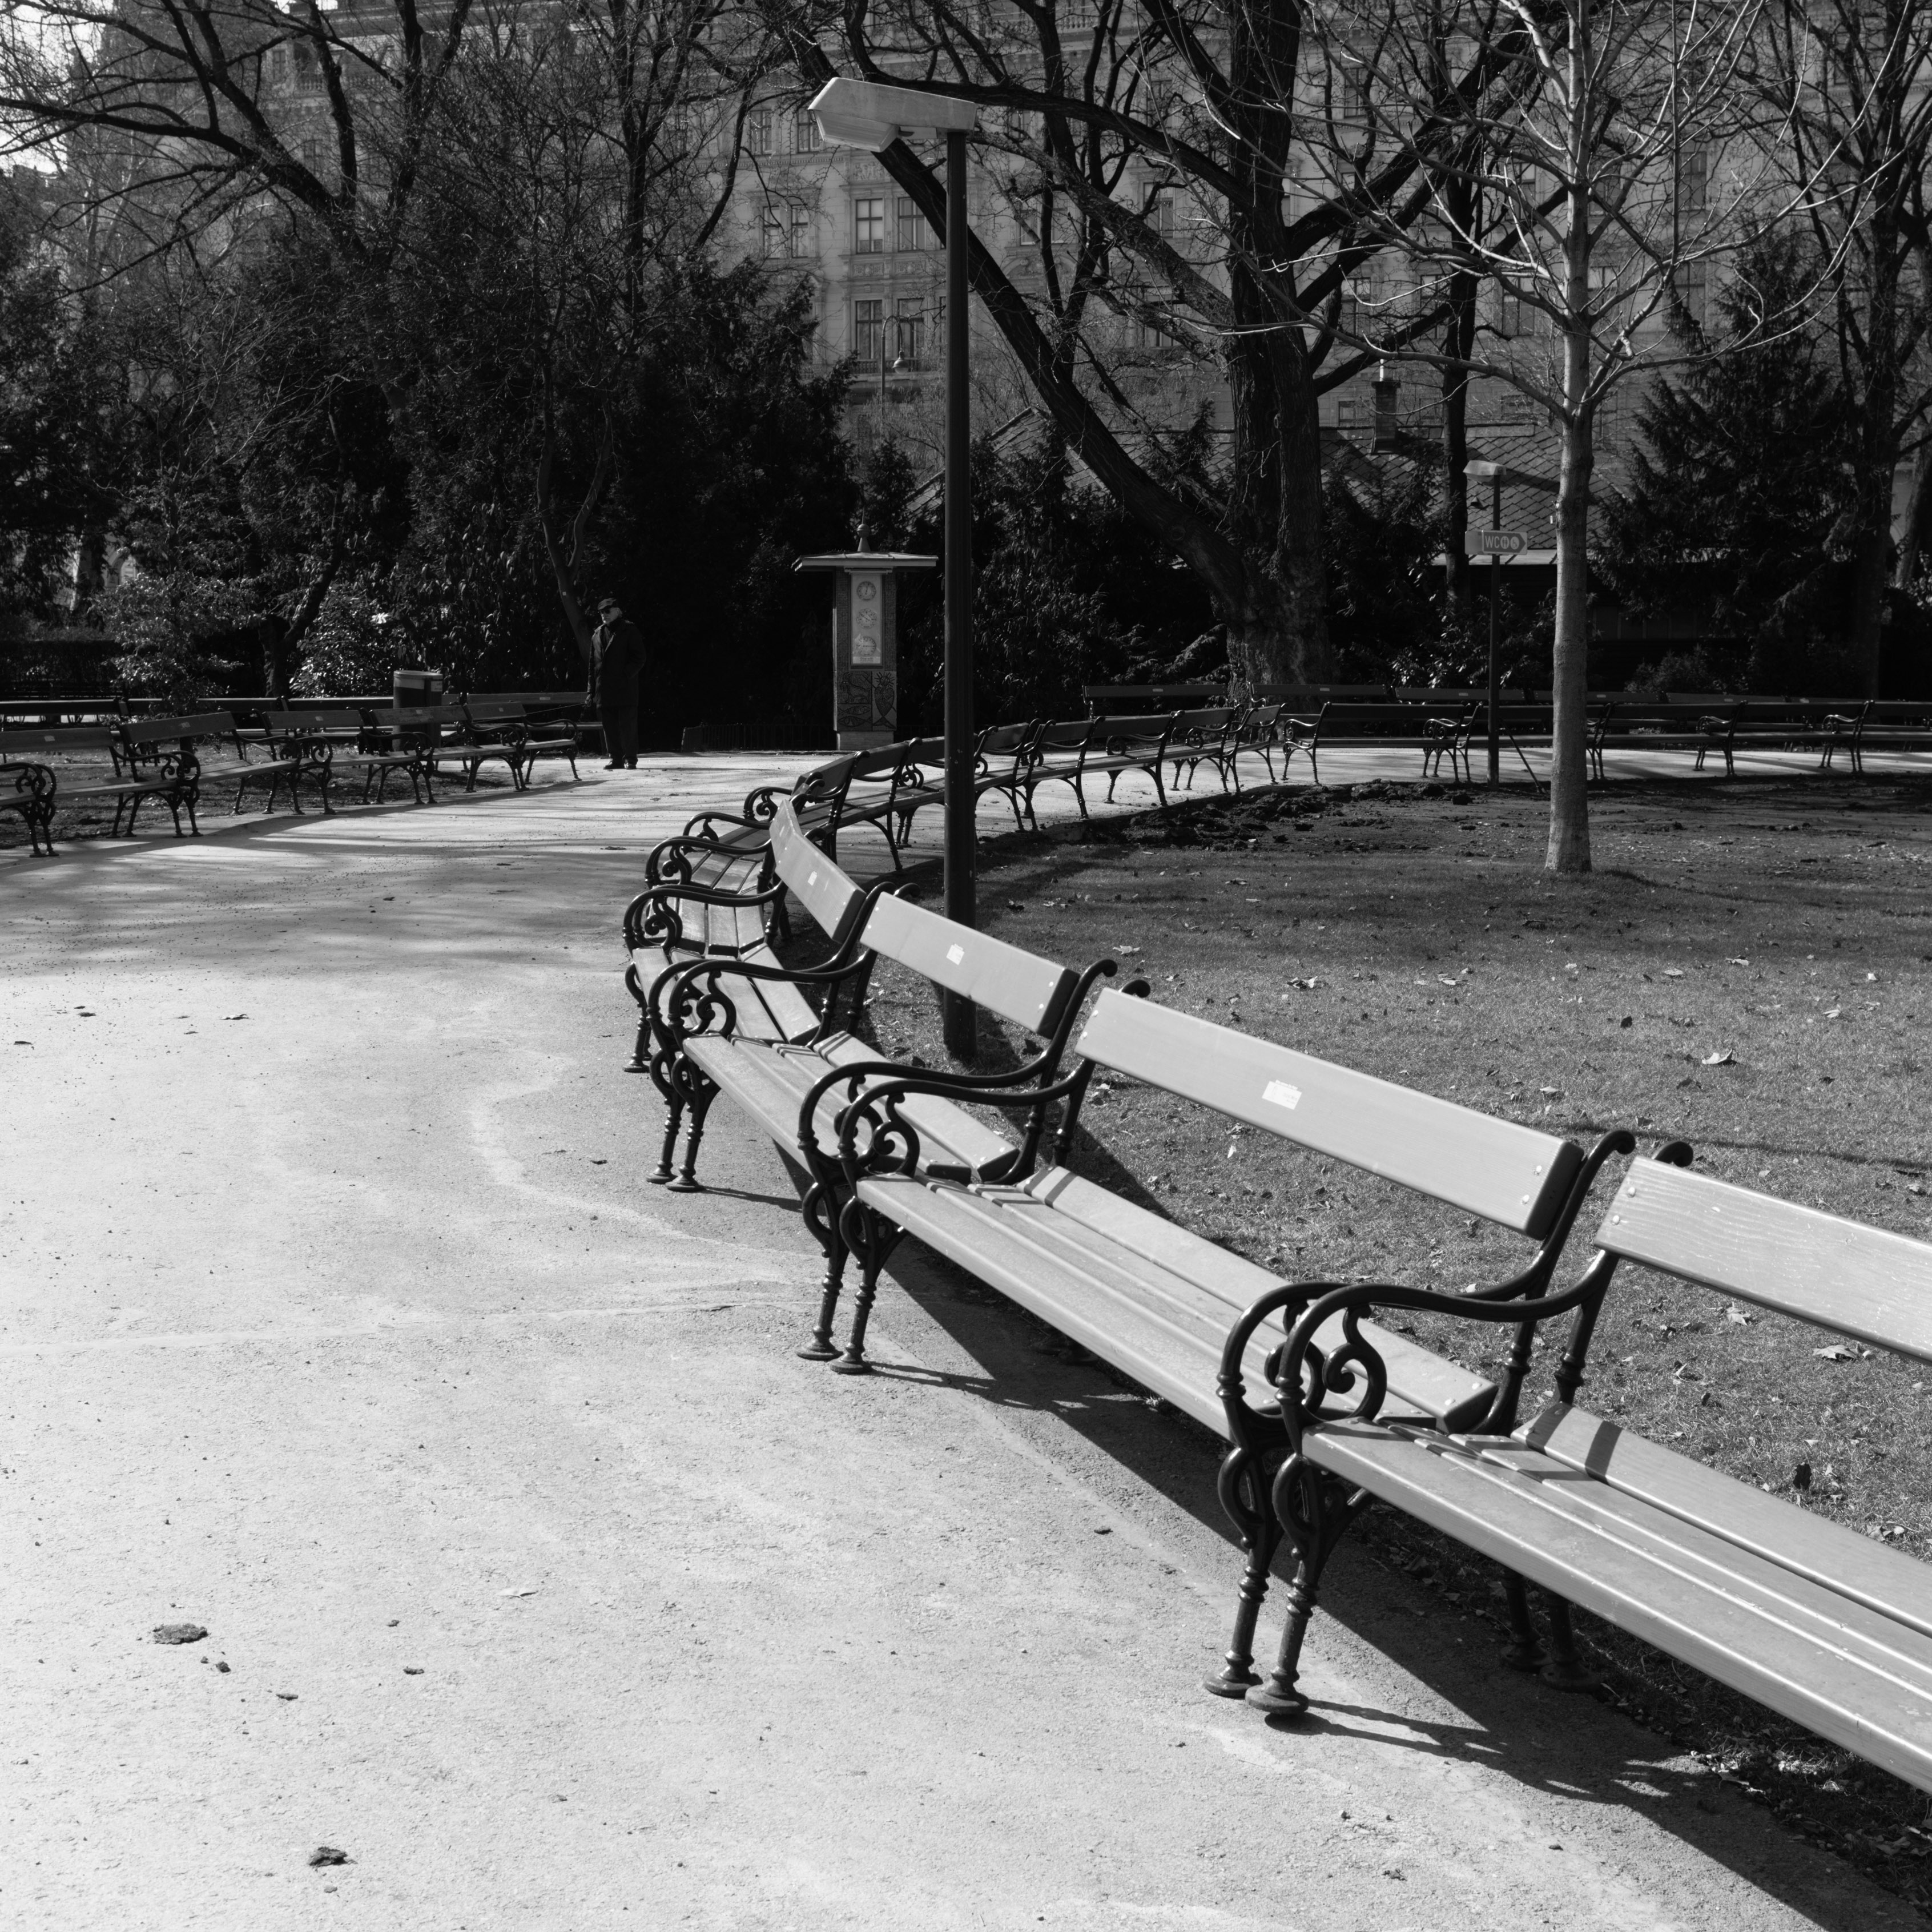 Free seats at Rathausplatz (Innere Stadt, Austria) with Leica M Monochrom (Leica Summilux-M 35mm f/1.4 ASPH.) by Magnus L Andersson (photography.anderssoneklund.se) at 2018-03-22 13:10:21